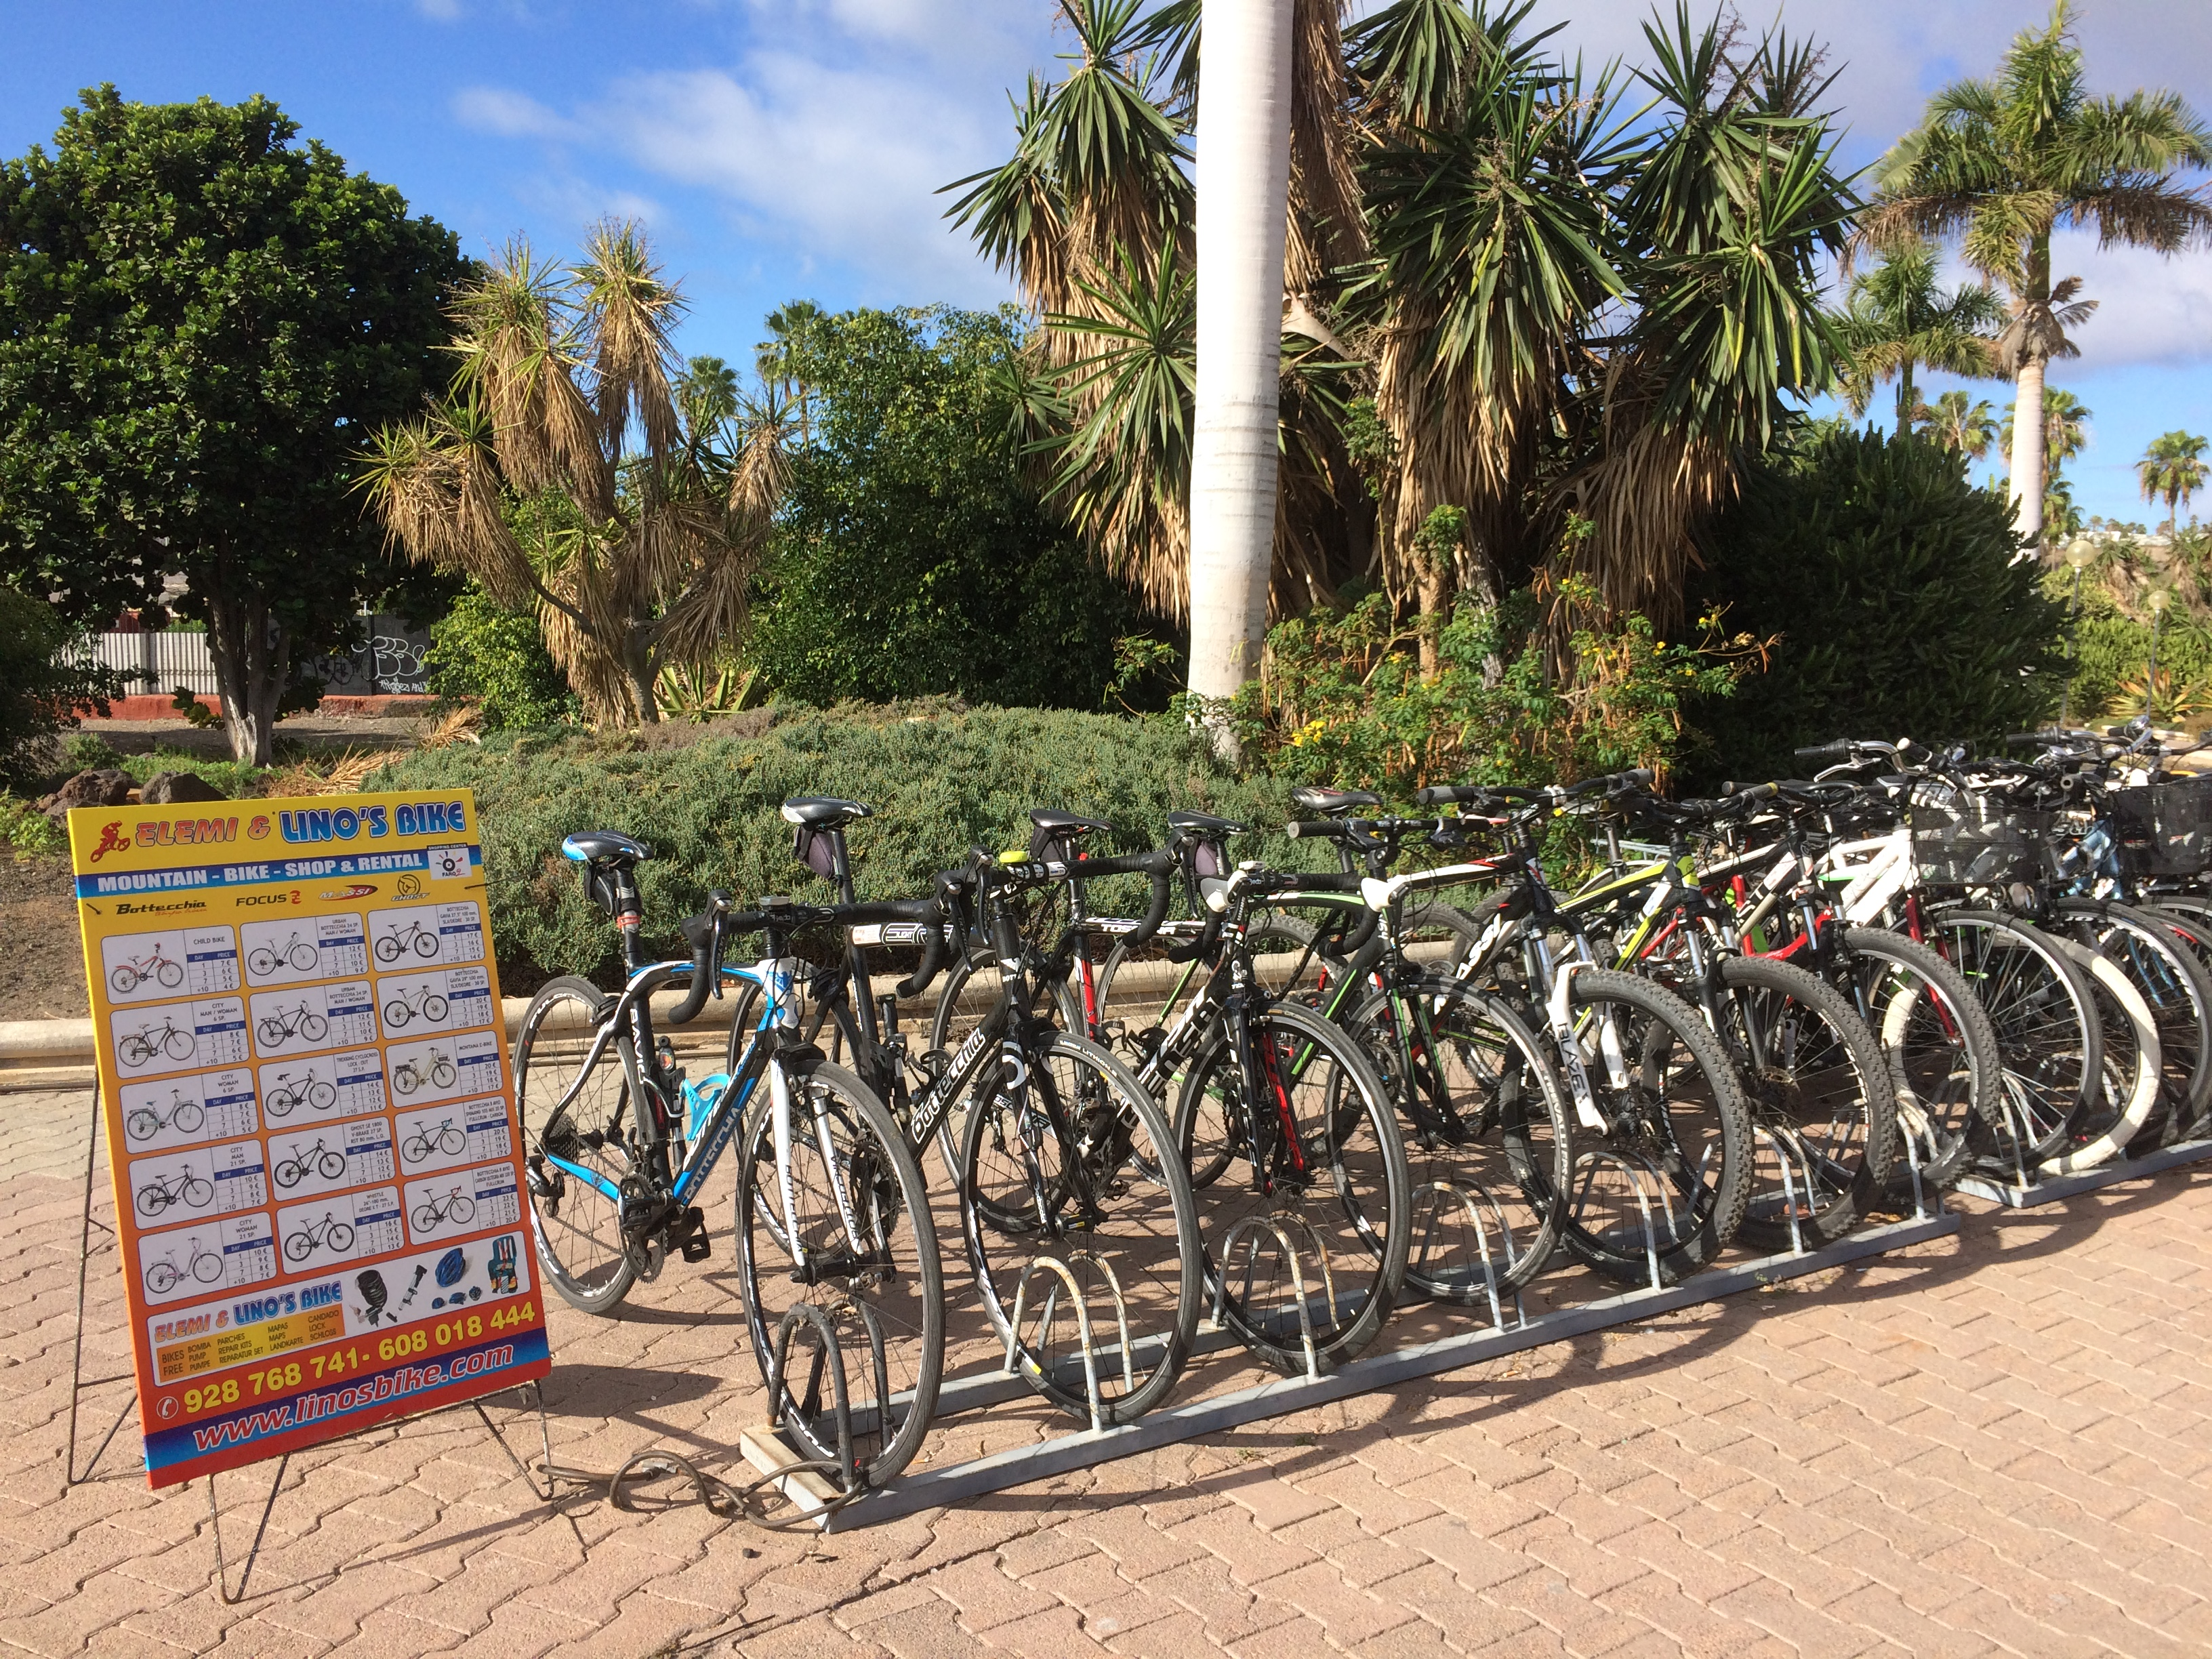 Top 5 things to do in Gran Canaria: renting bicycles